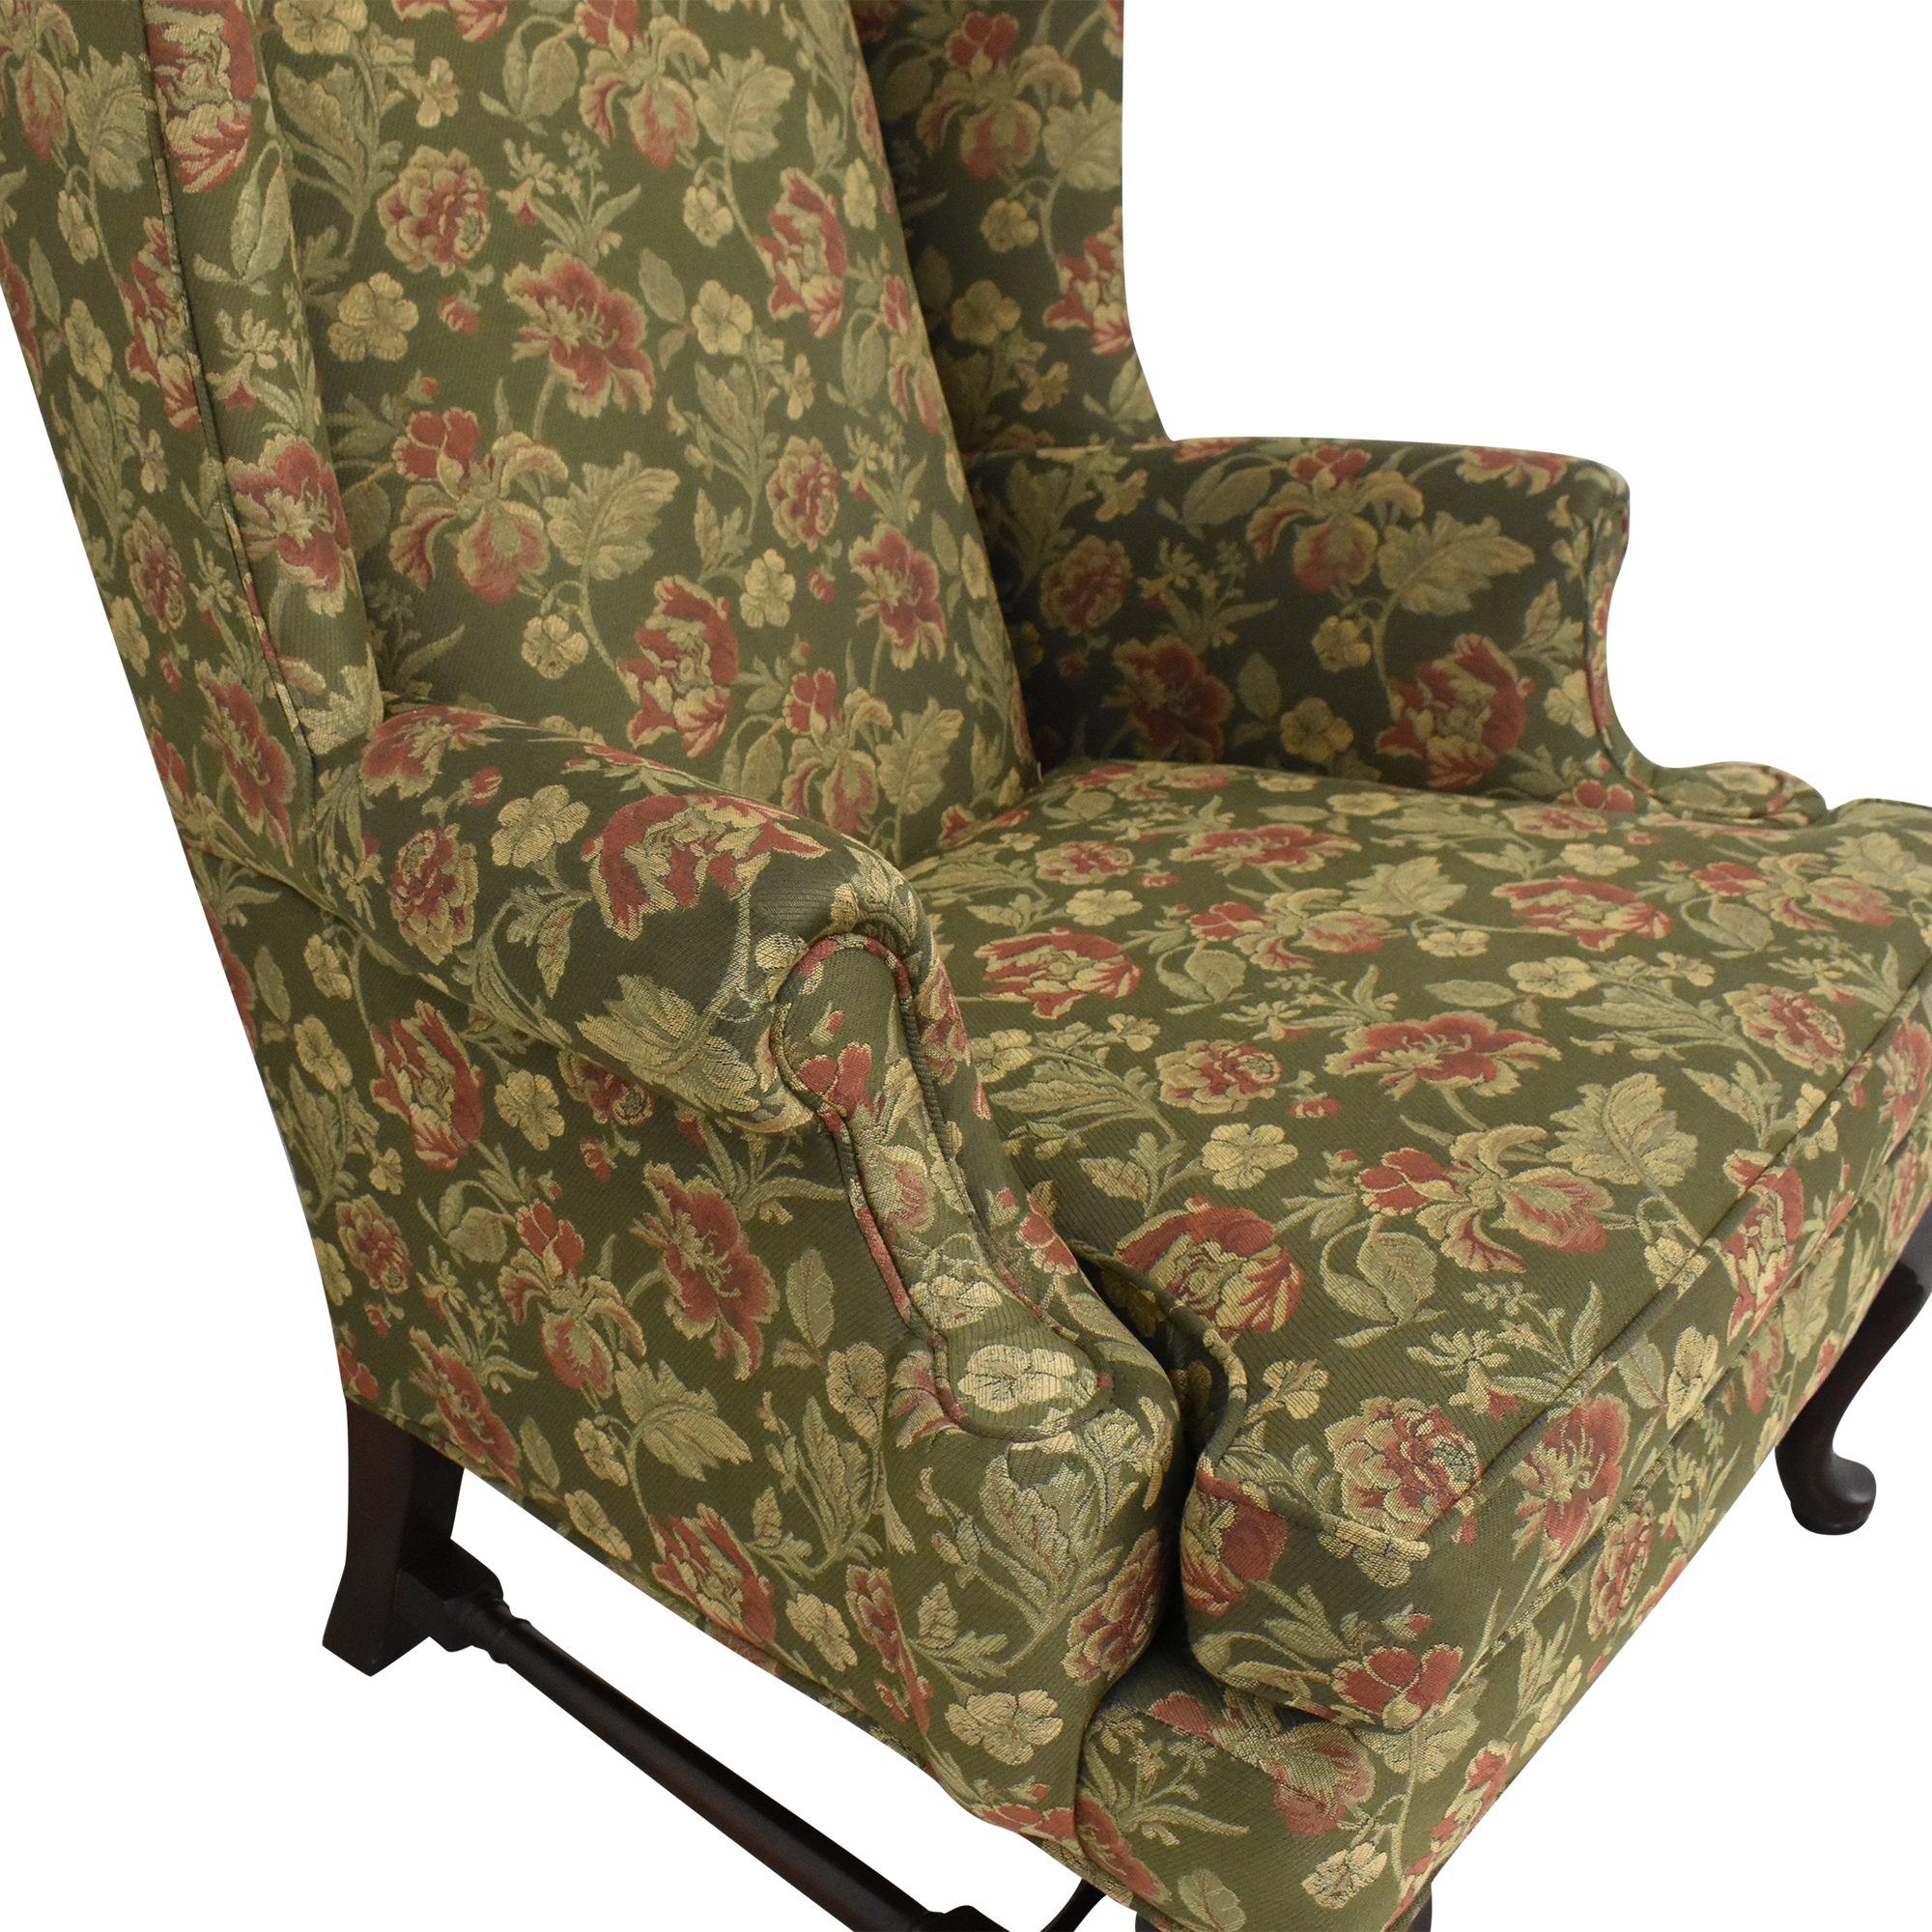 Ethan Allen Ethan Allen Wing Back Accent Chair dimensions